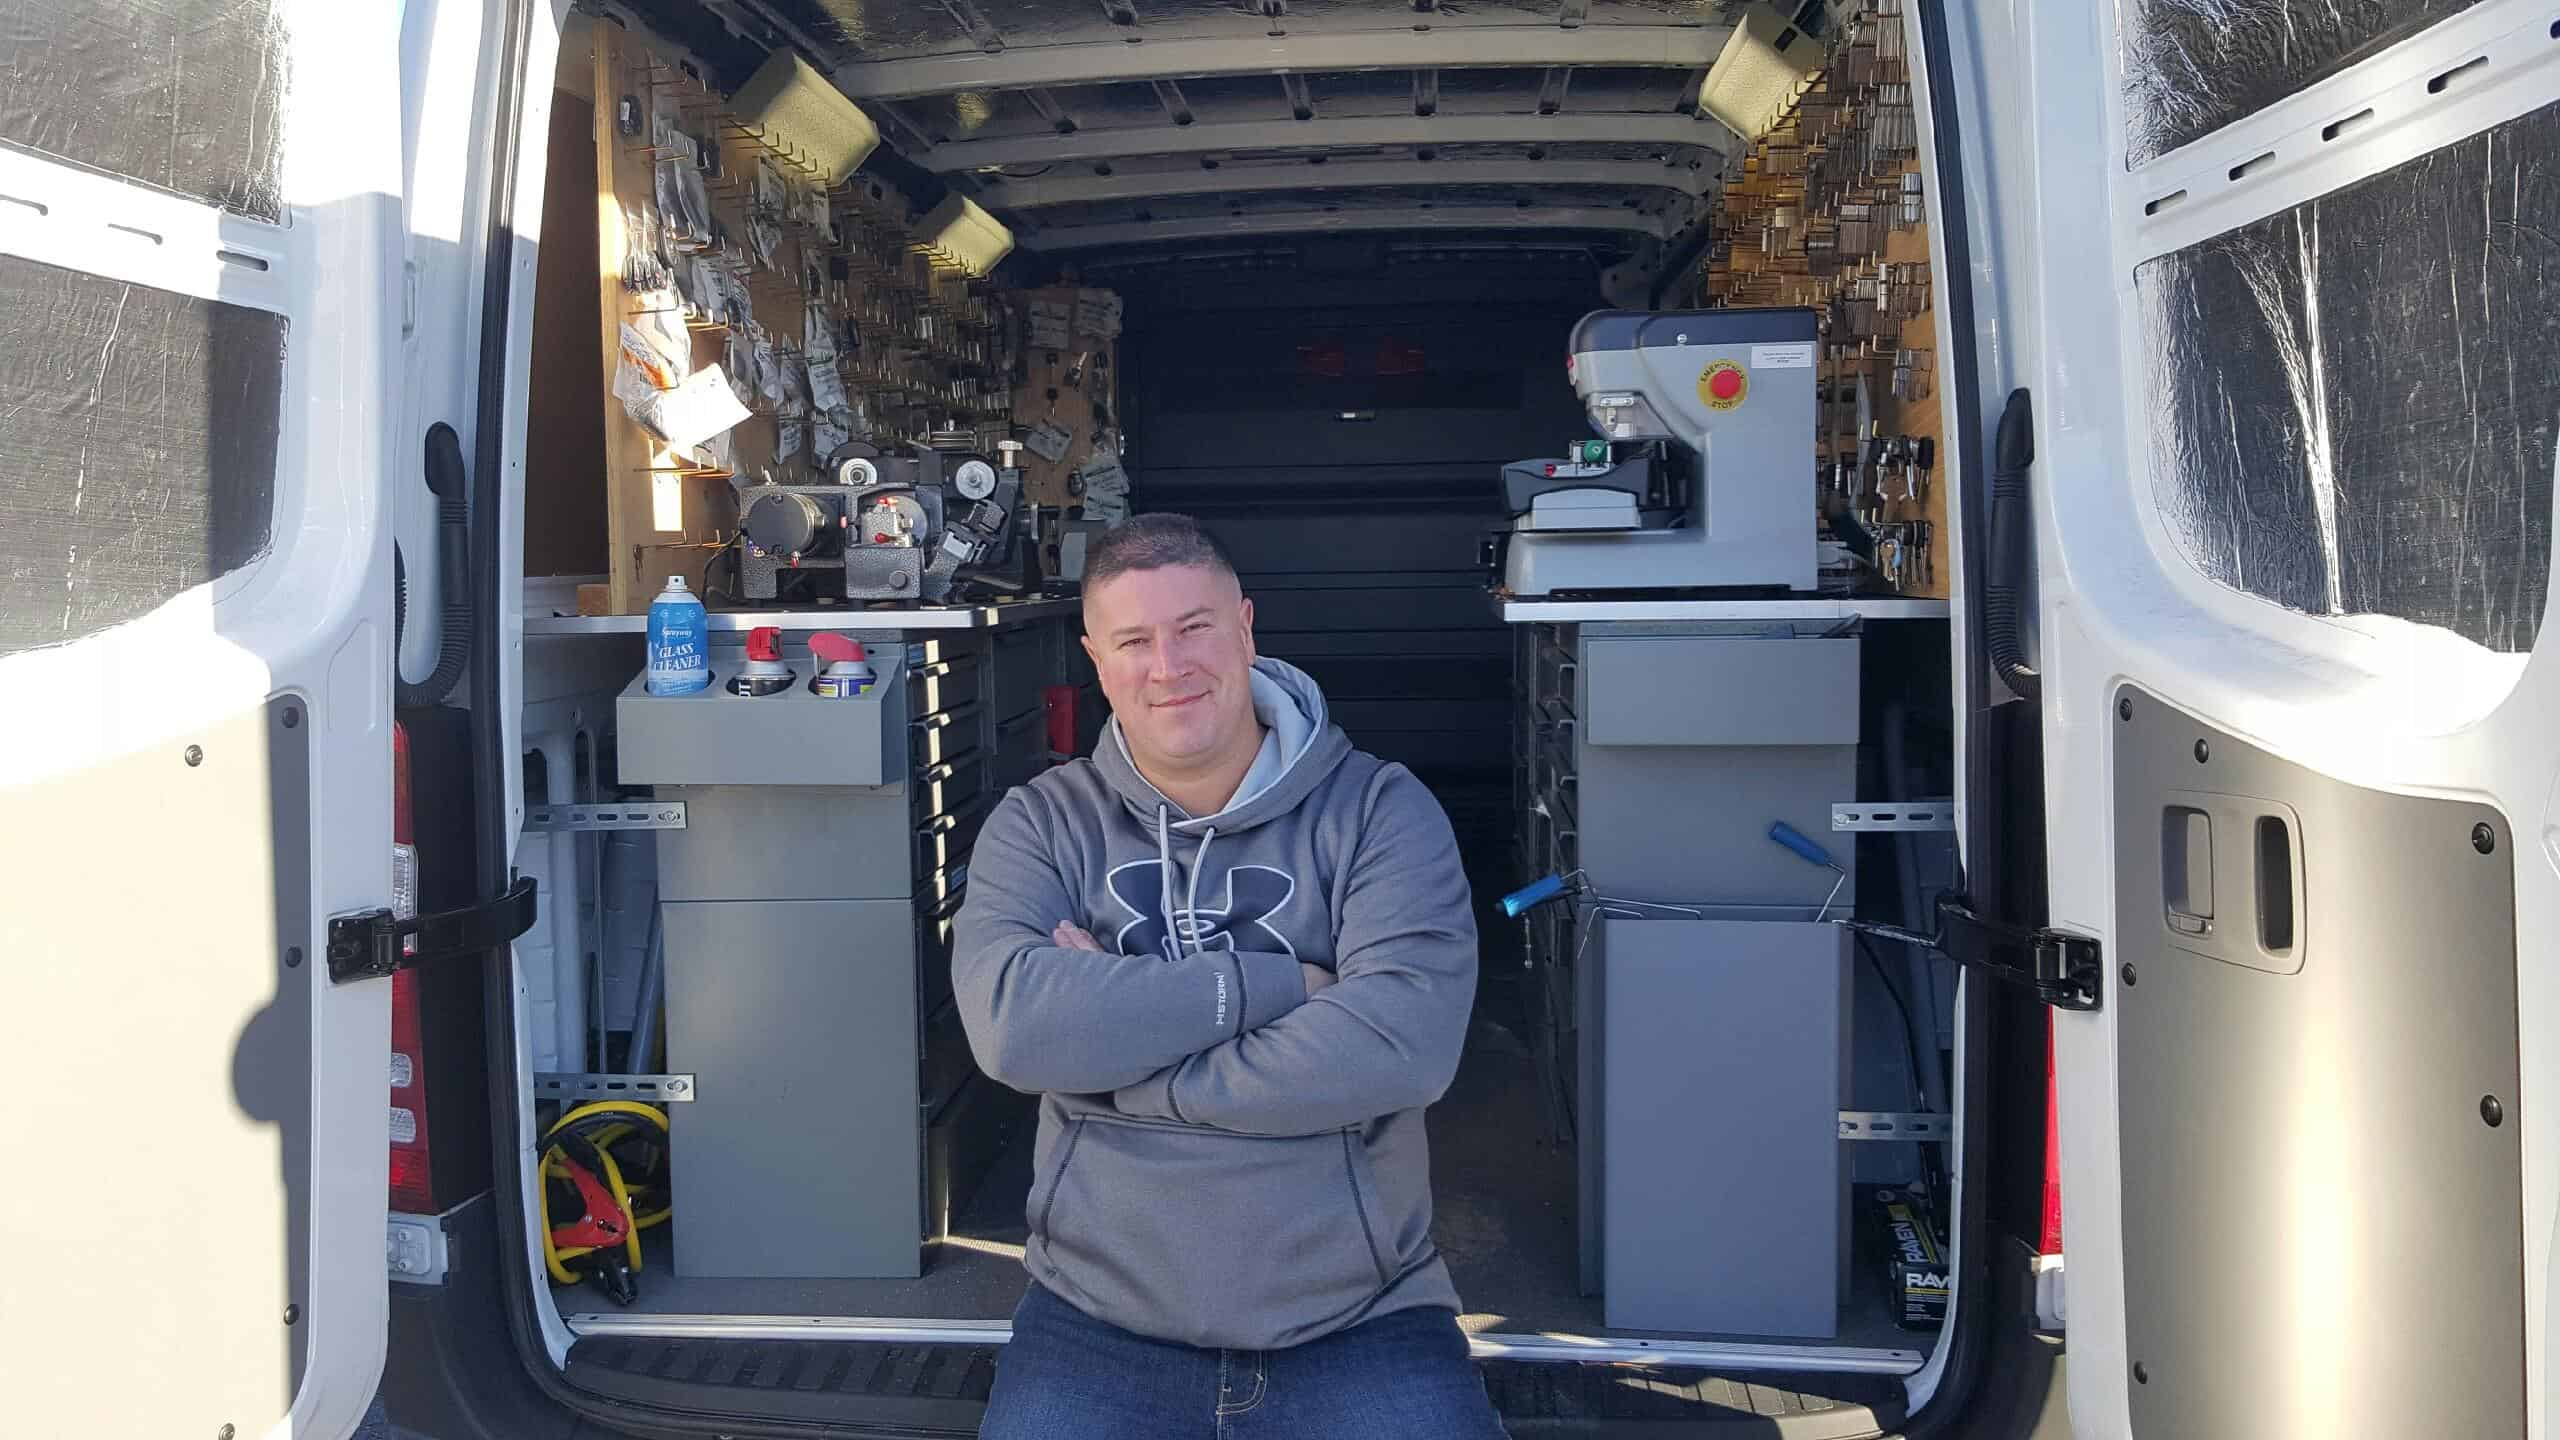 Owner Ameer Mandilawi and his mobile locksmith work truck in Albuquerque and Rancho Rio